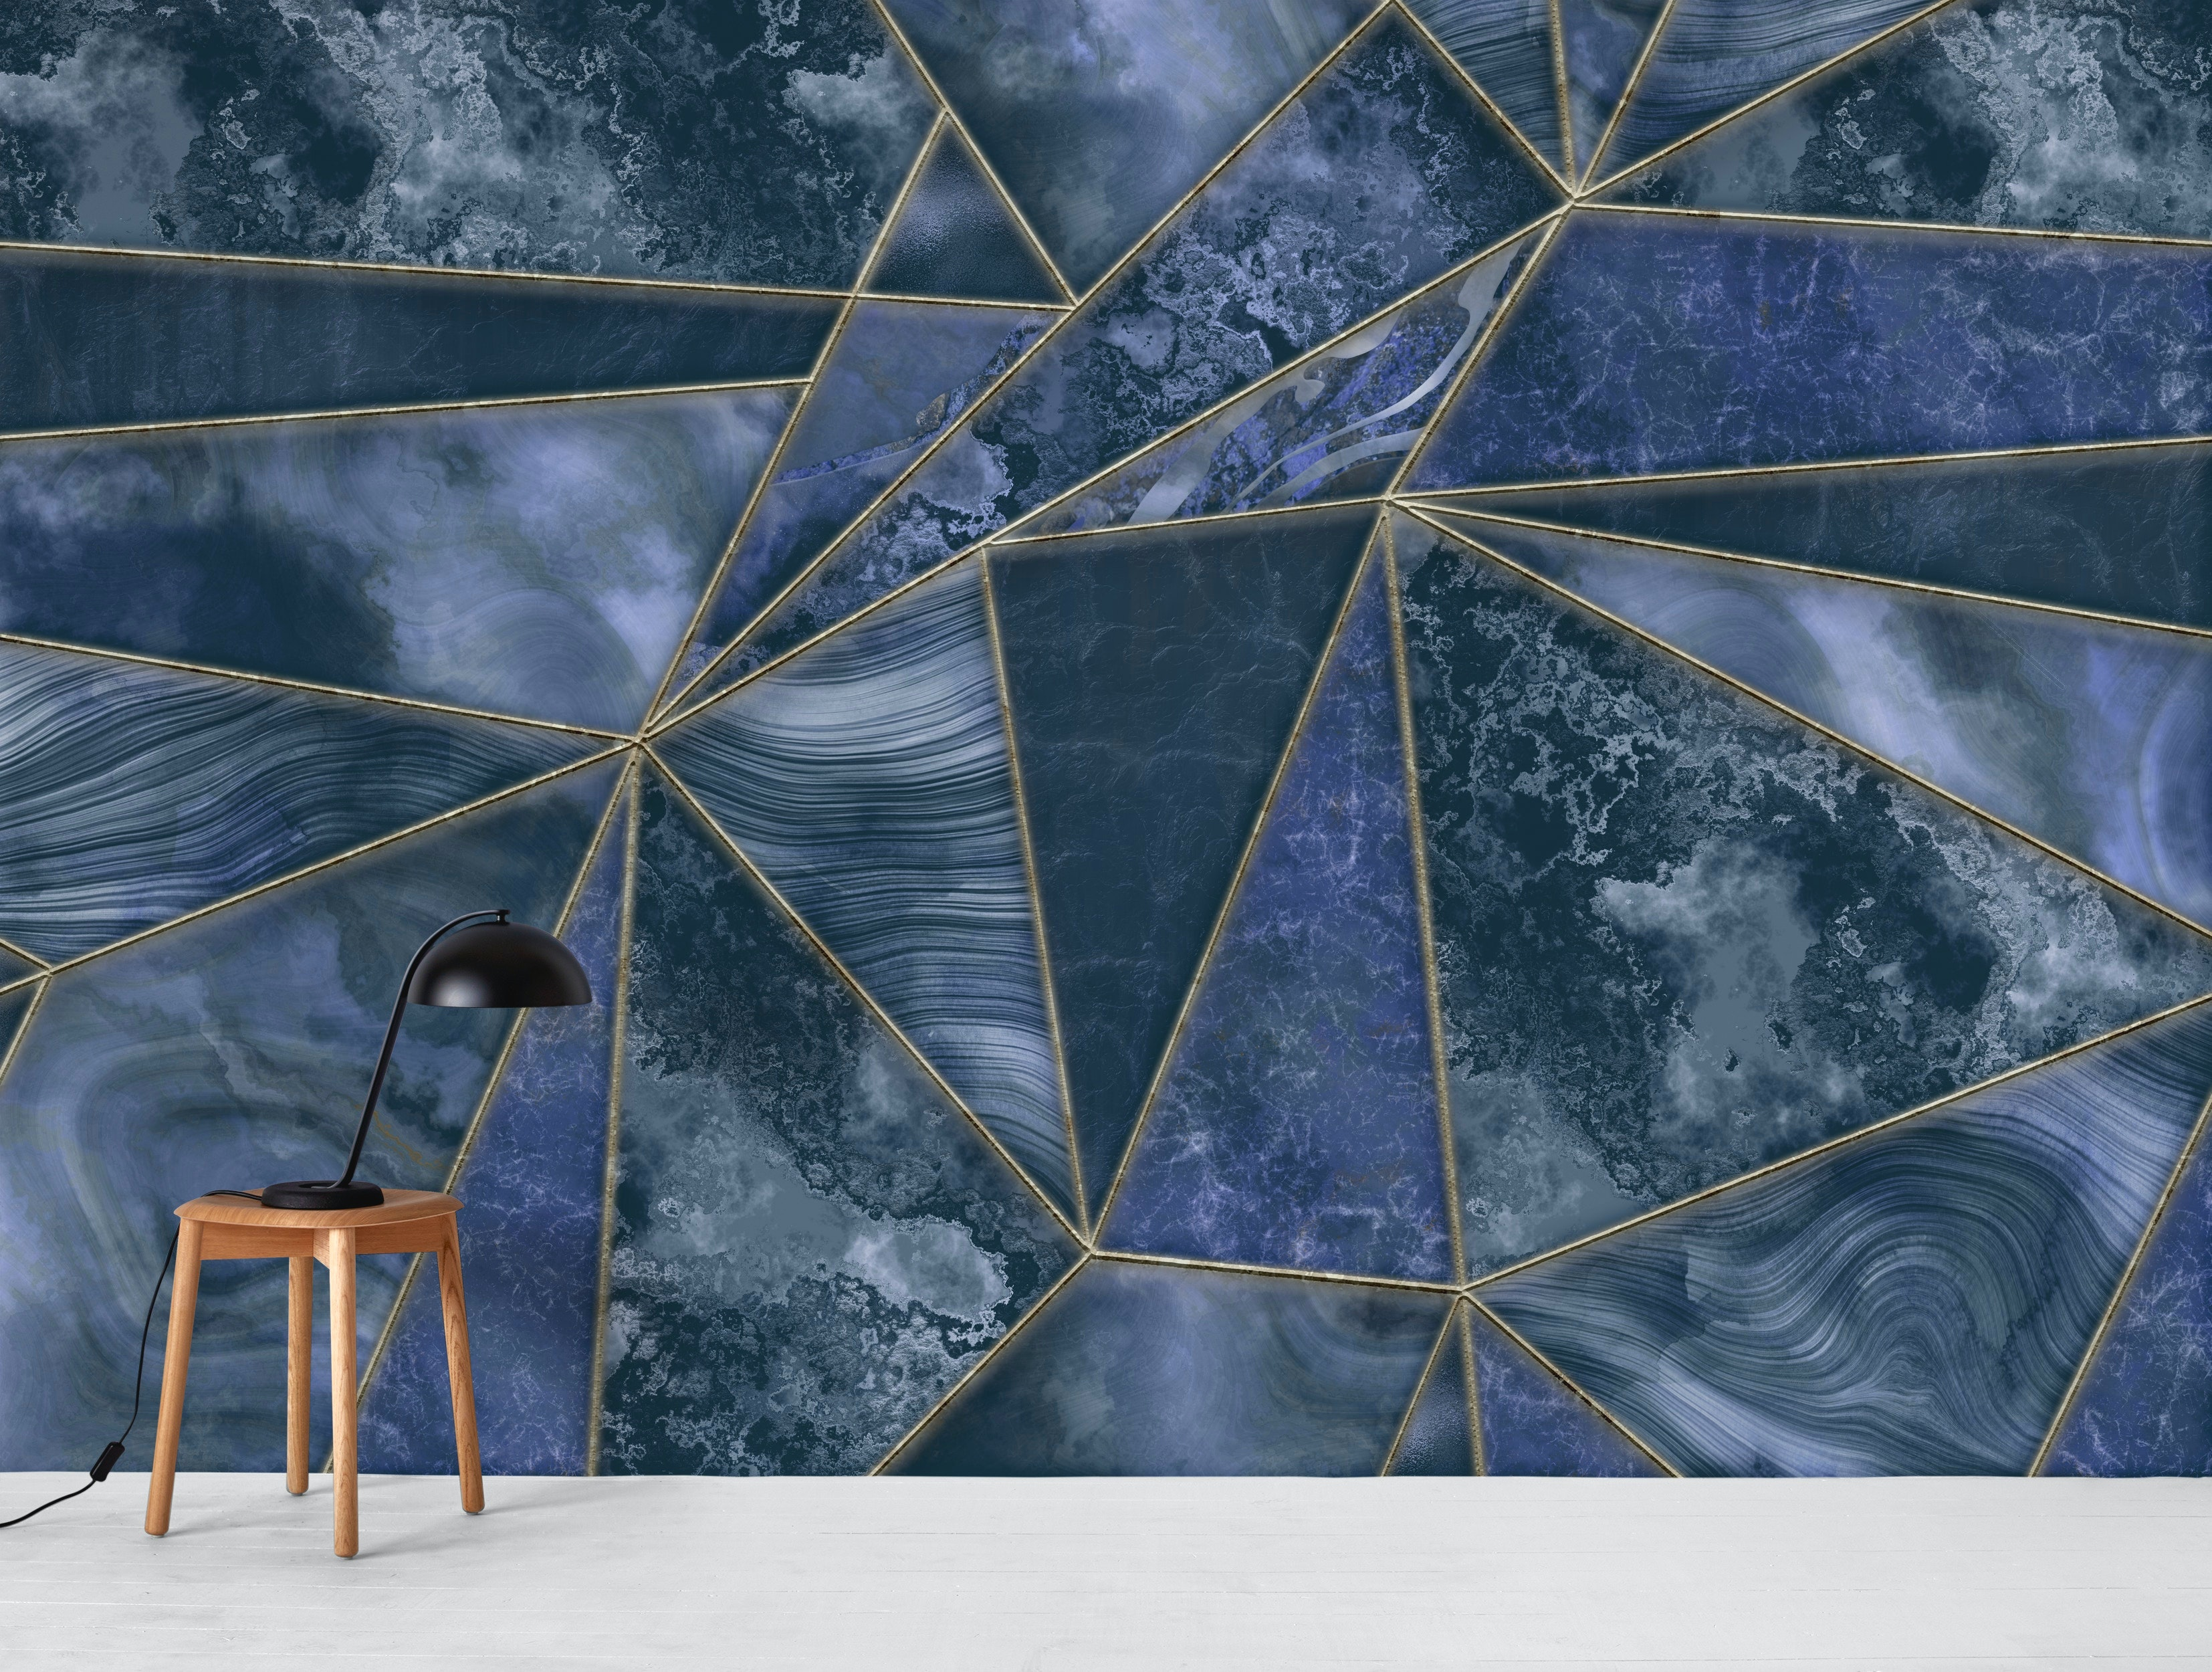 Buy Stained Glass Marble Navy Blue Wallpaper Free Us Shipping At Happywall Com